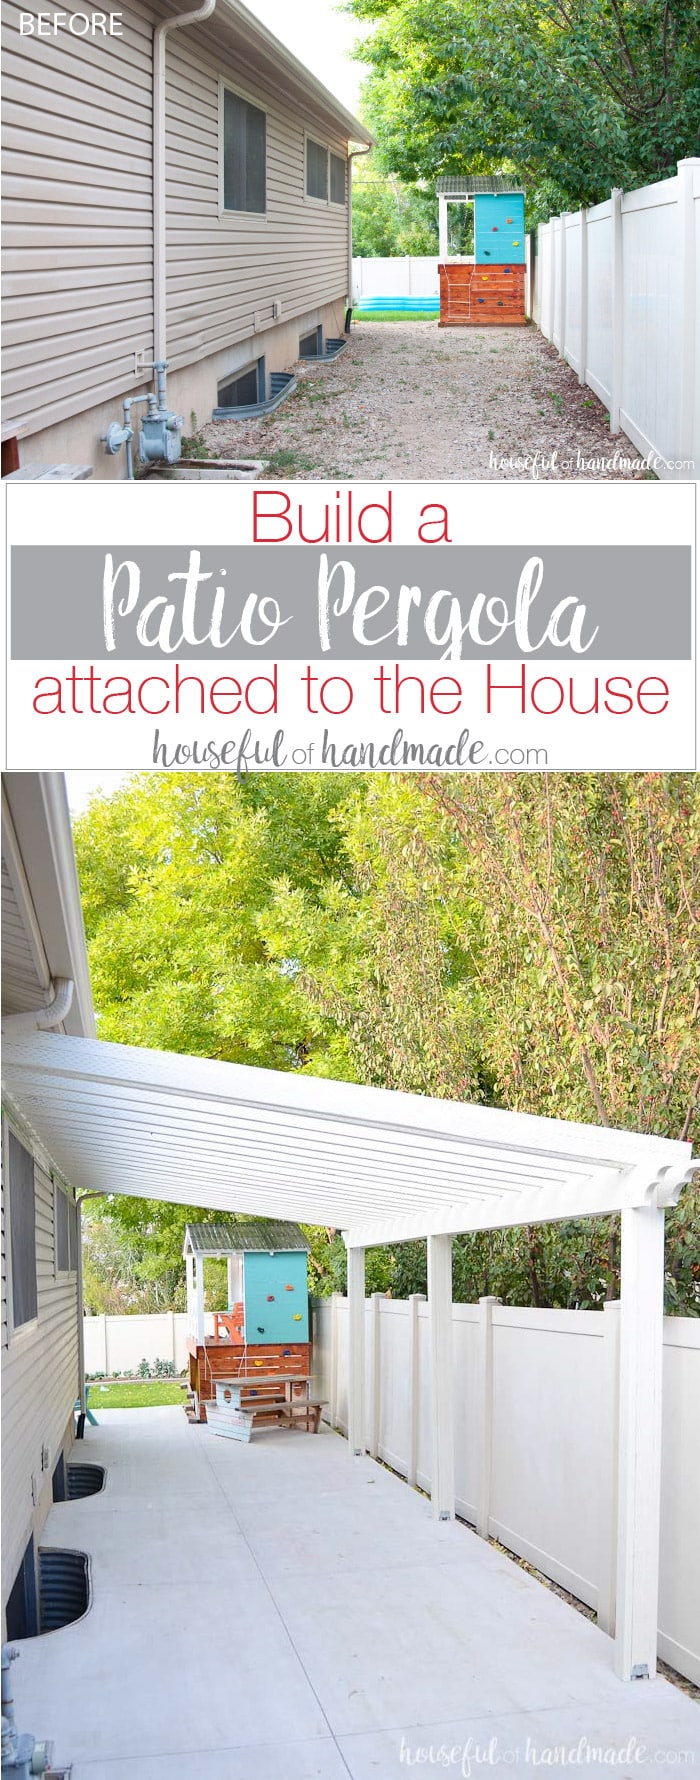 a patio pergola attached to the house is the perfect way to define an outdoor space - Build A Patio